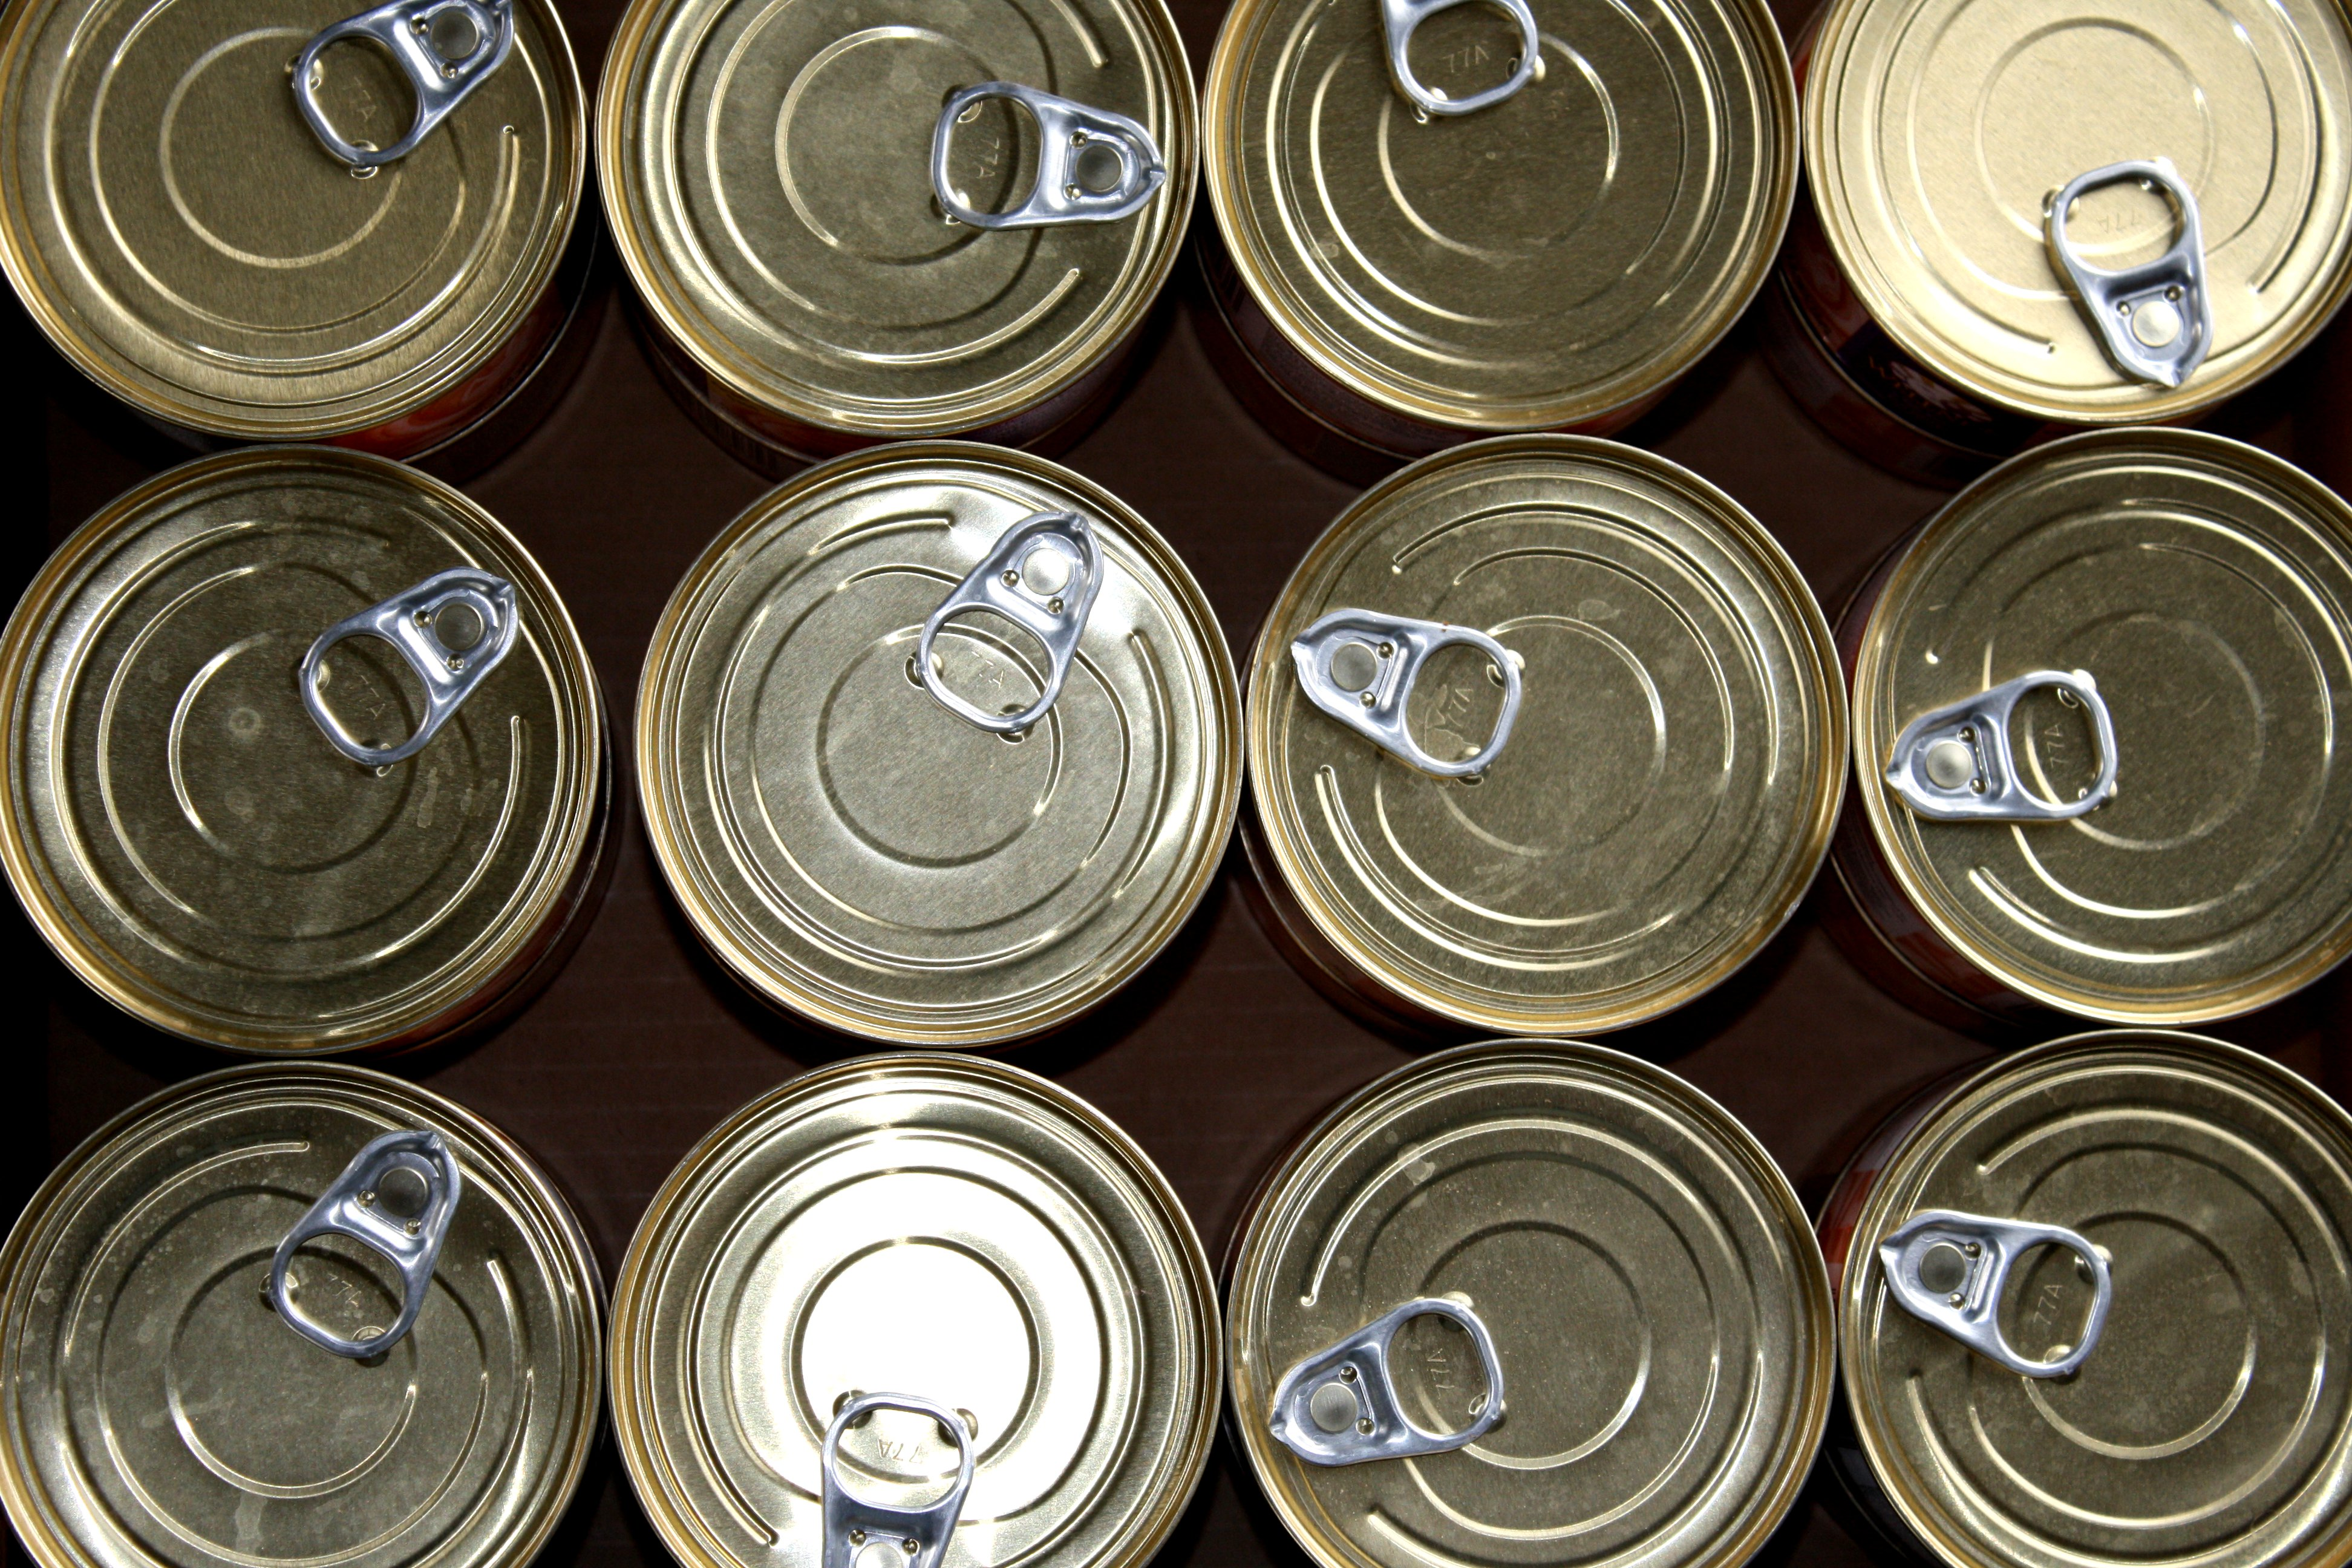 California to Delay BPA Warnings on Canned Foods Because Regulator Says Label Is Too Scary